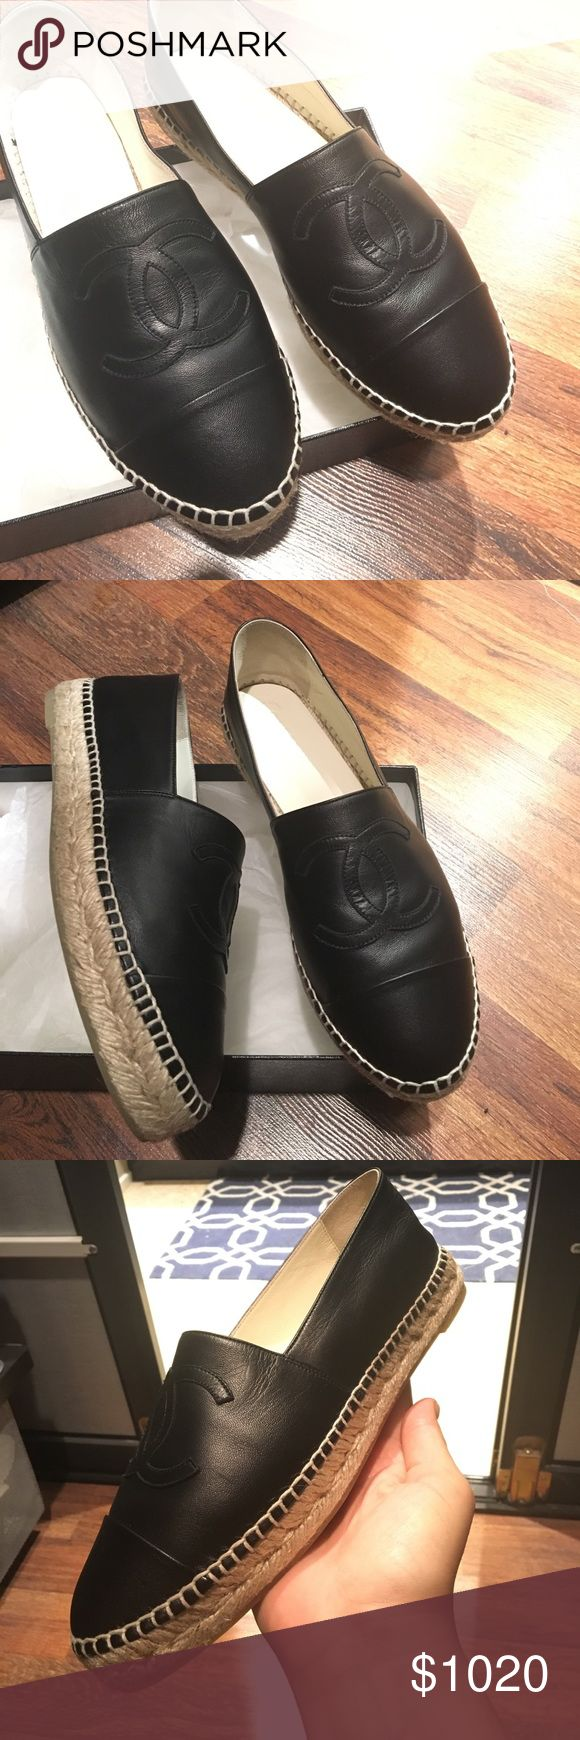 💯%Authentic Chanel Espadrilles New unworn Black Leather Chanel Espadrilles - soft leather (lambskin leather) ----->>>No Trades OR PP<<<--- ***Price is FINAL CHANEL Shoes Espadrilles